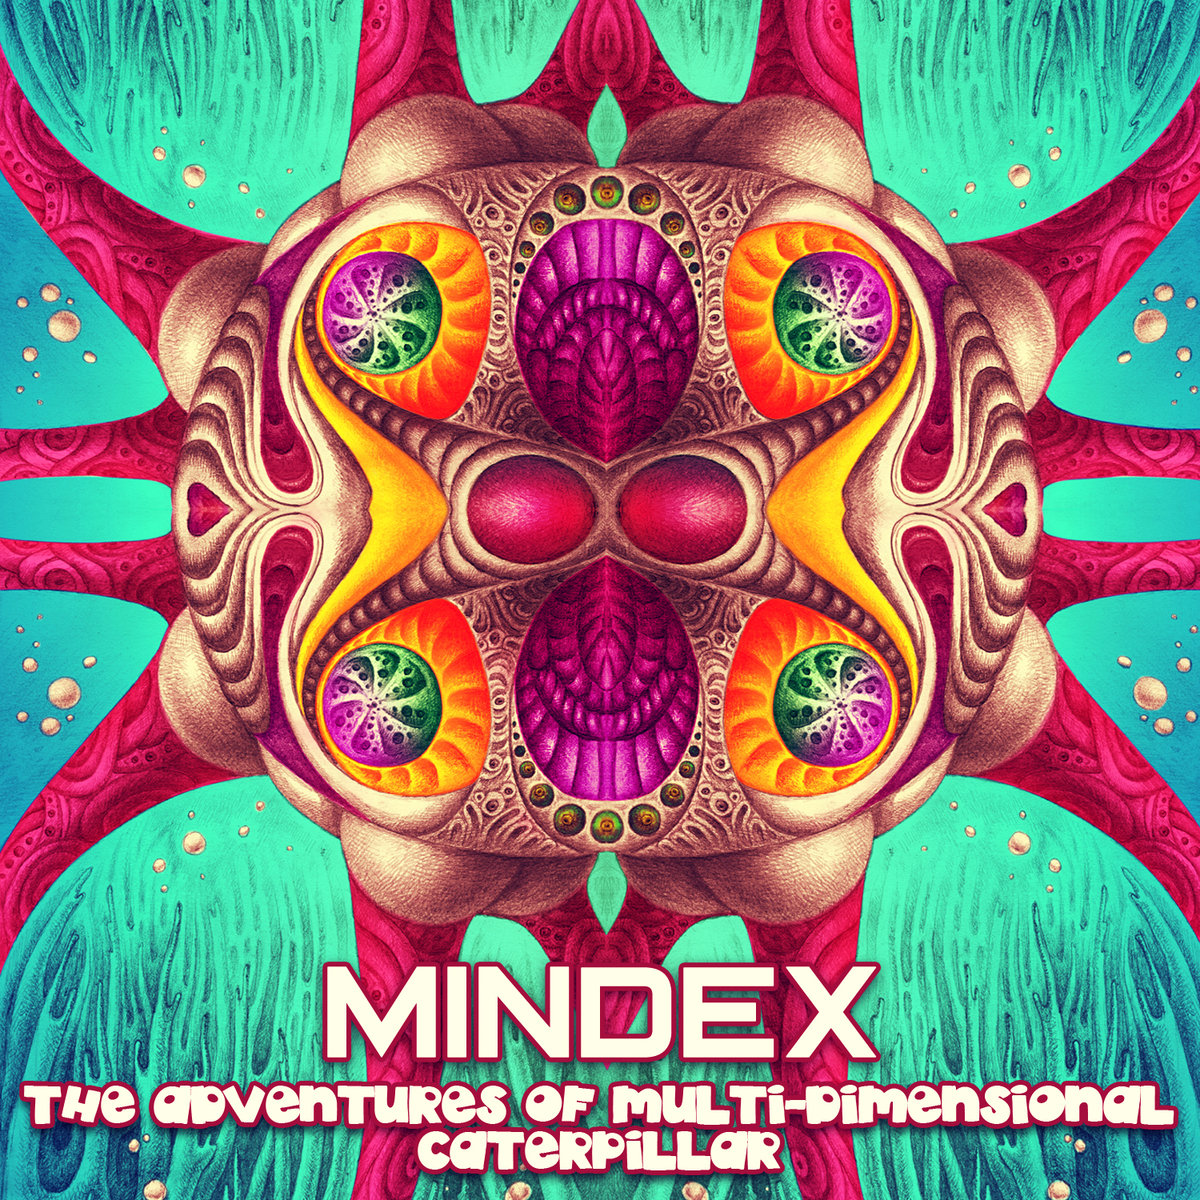 Mindex - Zephyr @ 'The Adventures of Multi-Dimensional Caterpillar' album (drum & bass, electronic)